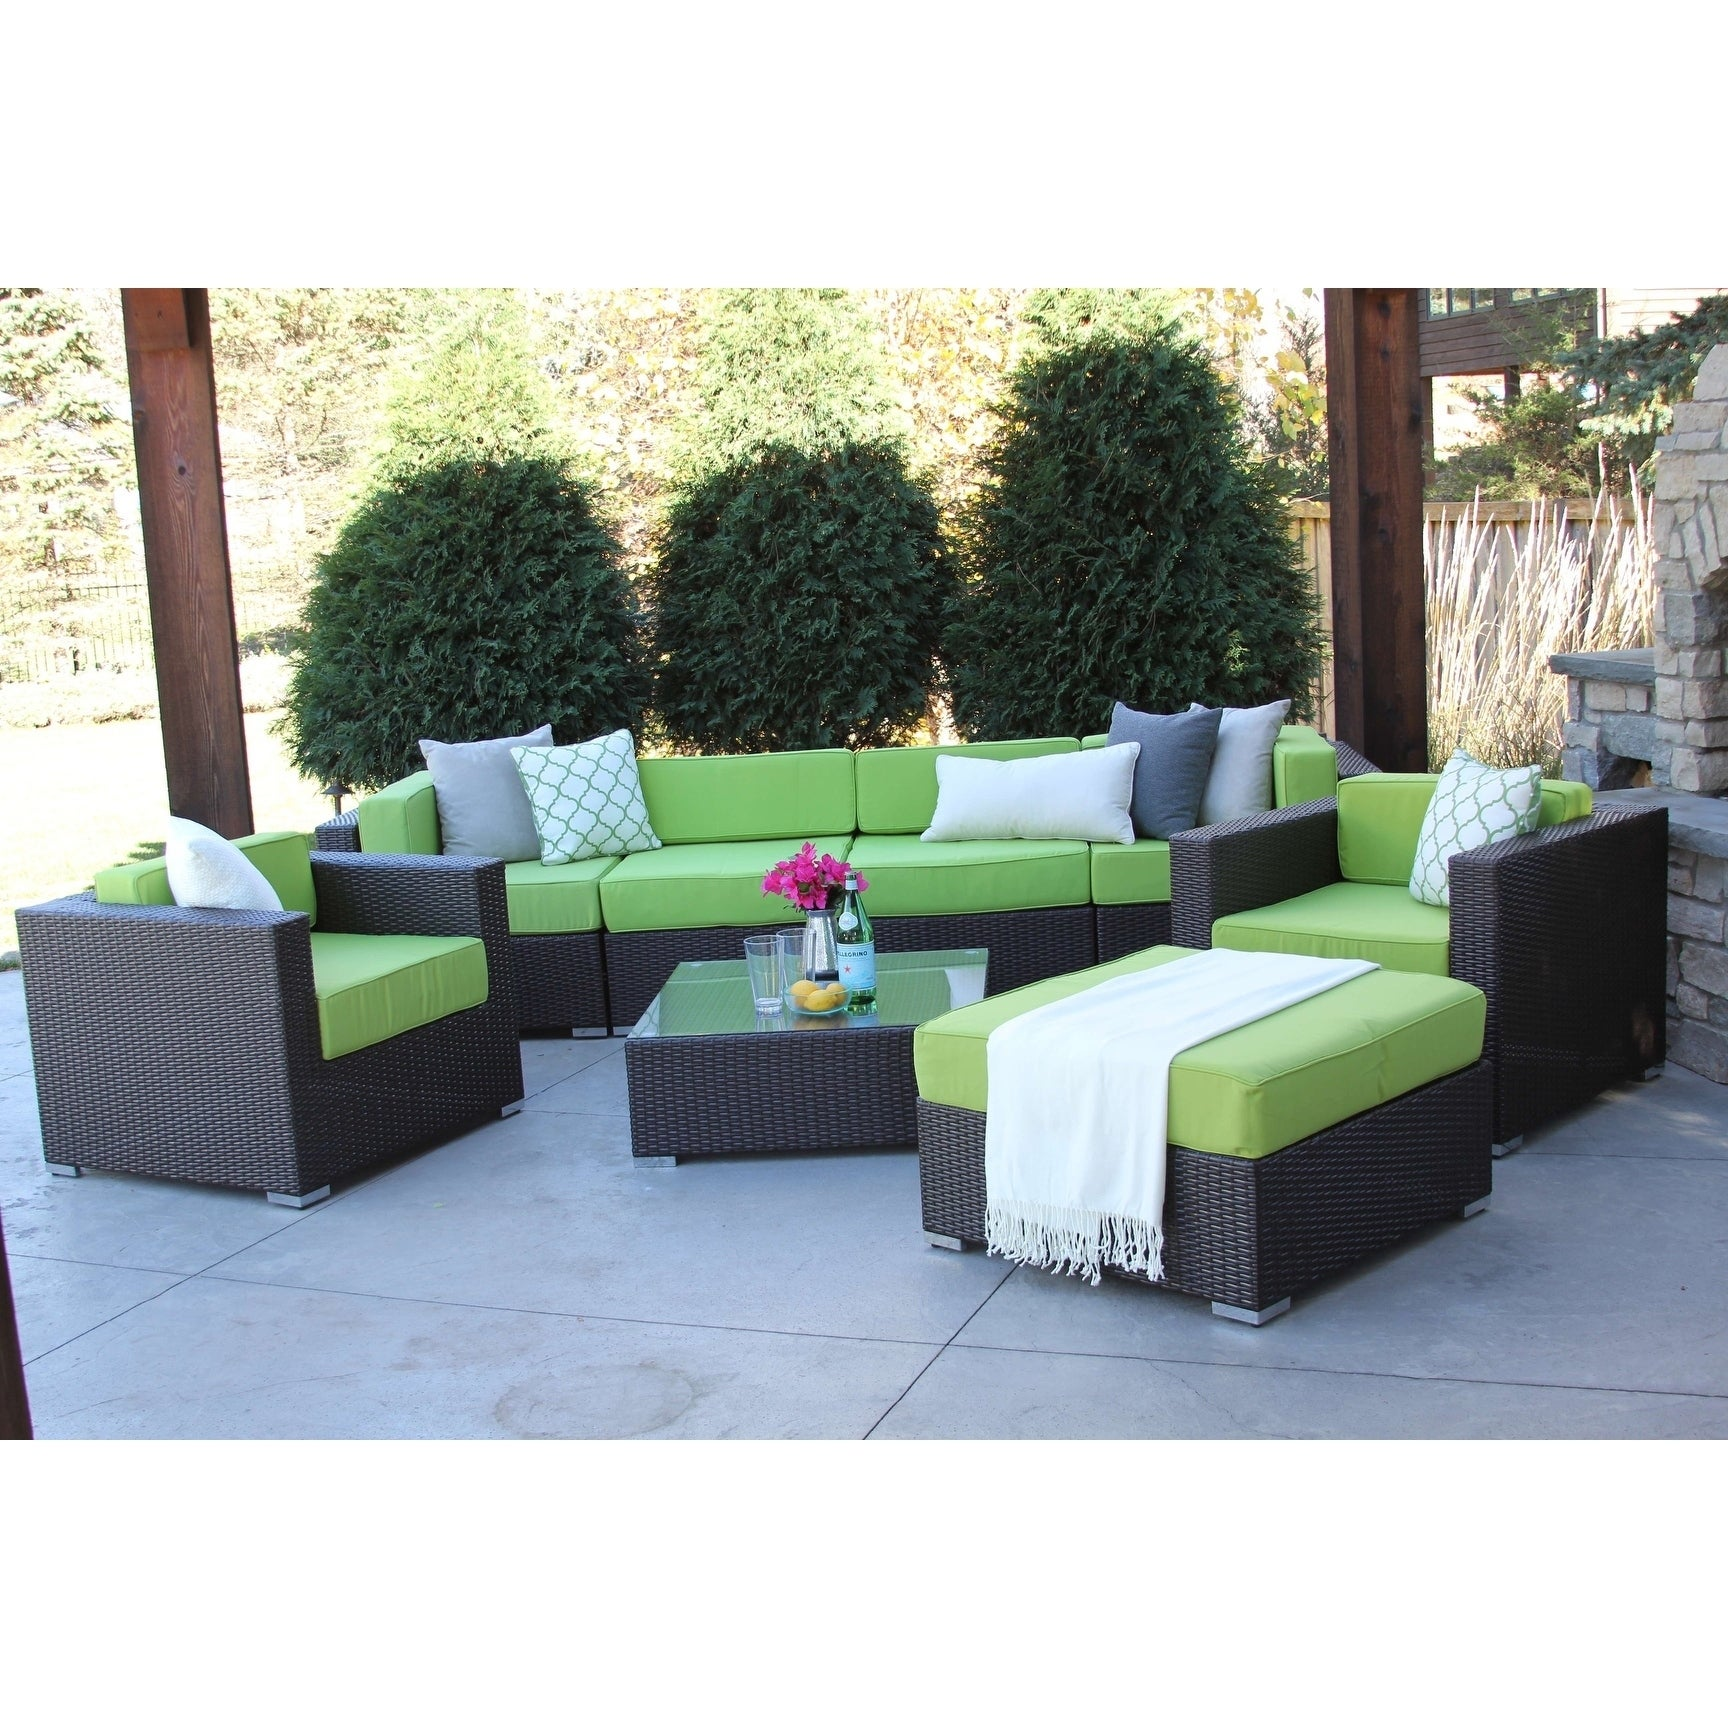 Hiawatha 8-PC Modern Outdoor Rattan Patio Furniture Sofa Set-Modular |  Overstock.com Shopping - The Best Deals on Sofas, Chairs & Sectionals